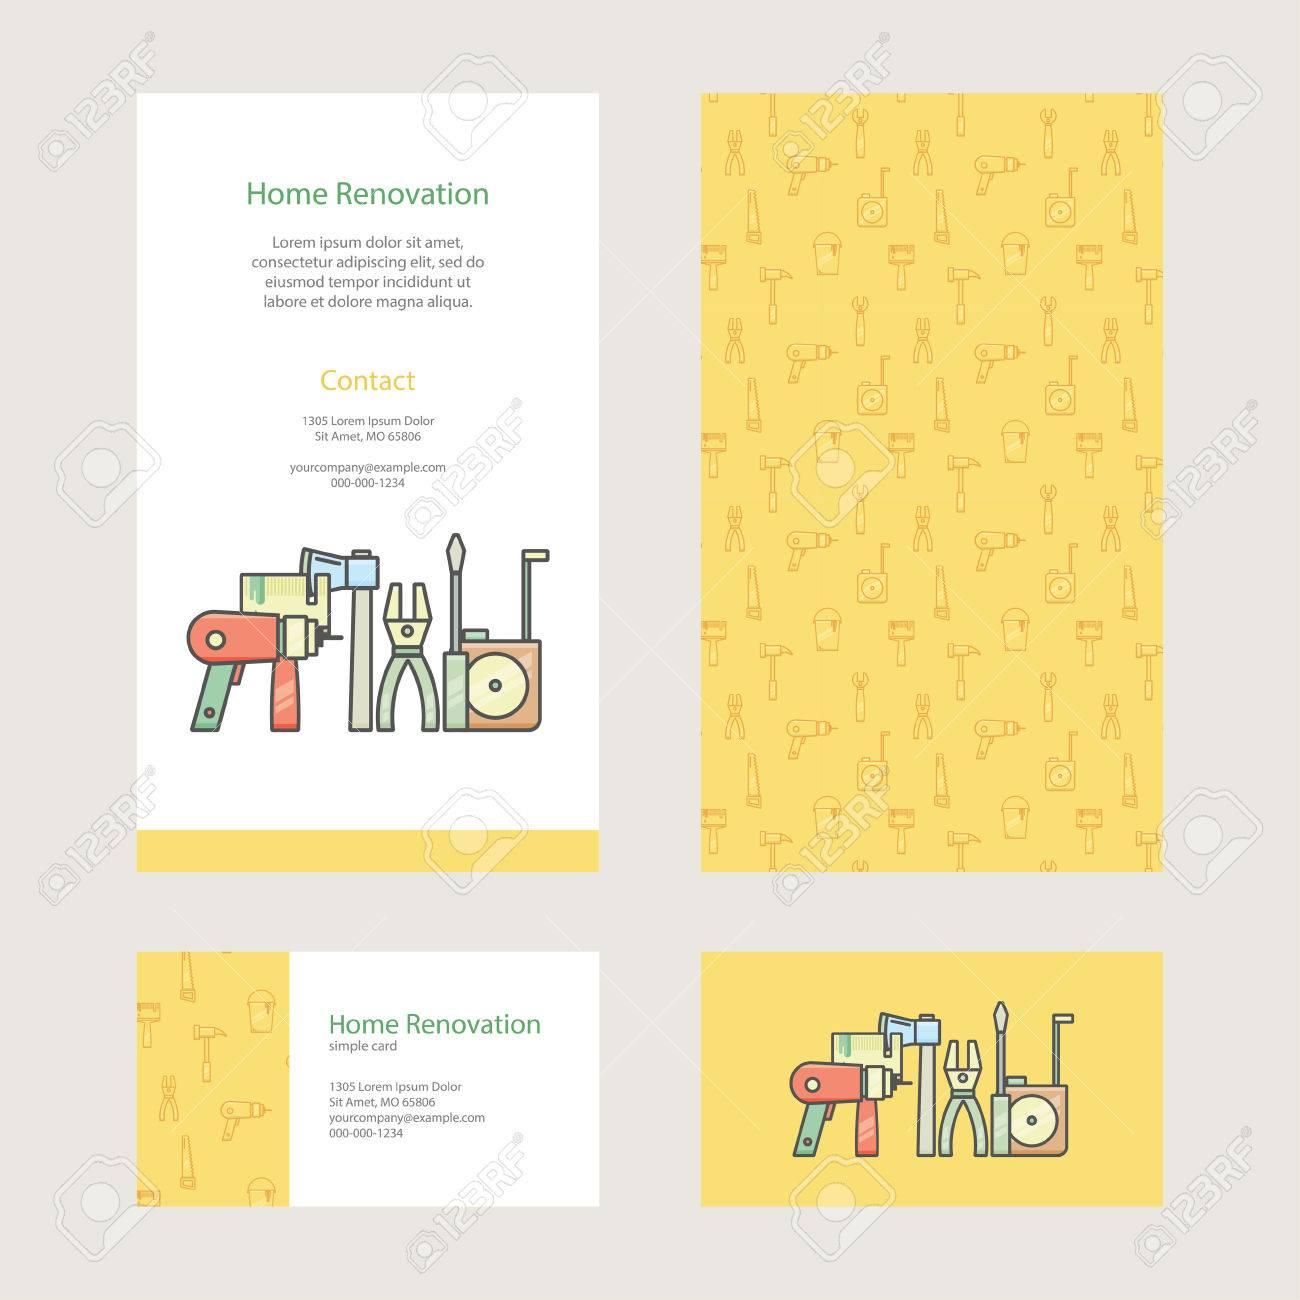 Free construction business cards templates images templates babysitter business cards choice image free business cards 100 babysitting business cards templates free babysitter babysitting magicingreecefo Gallery